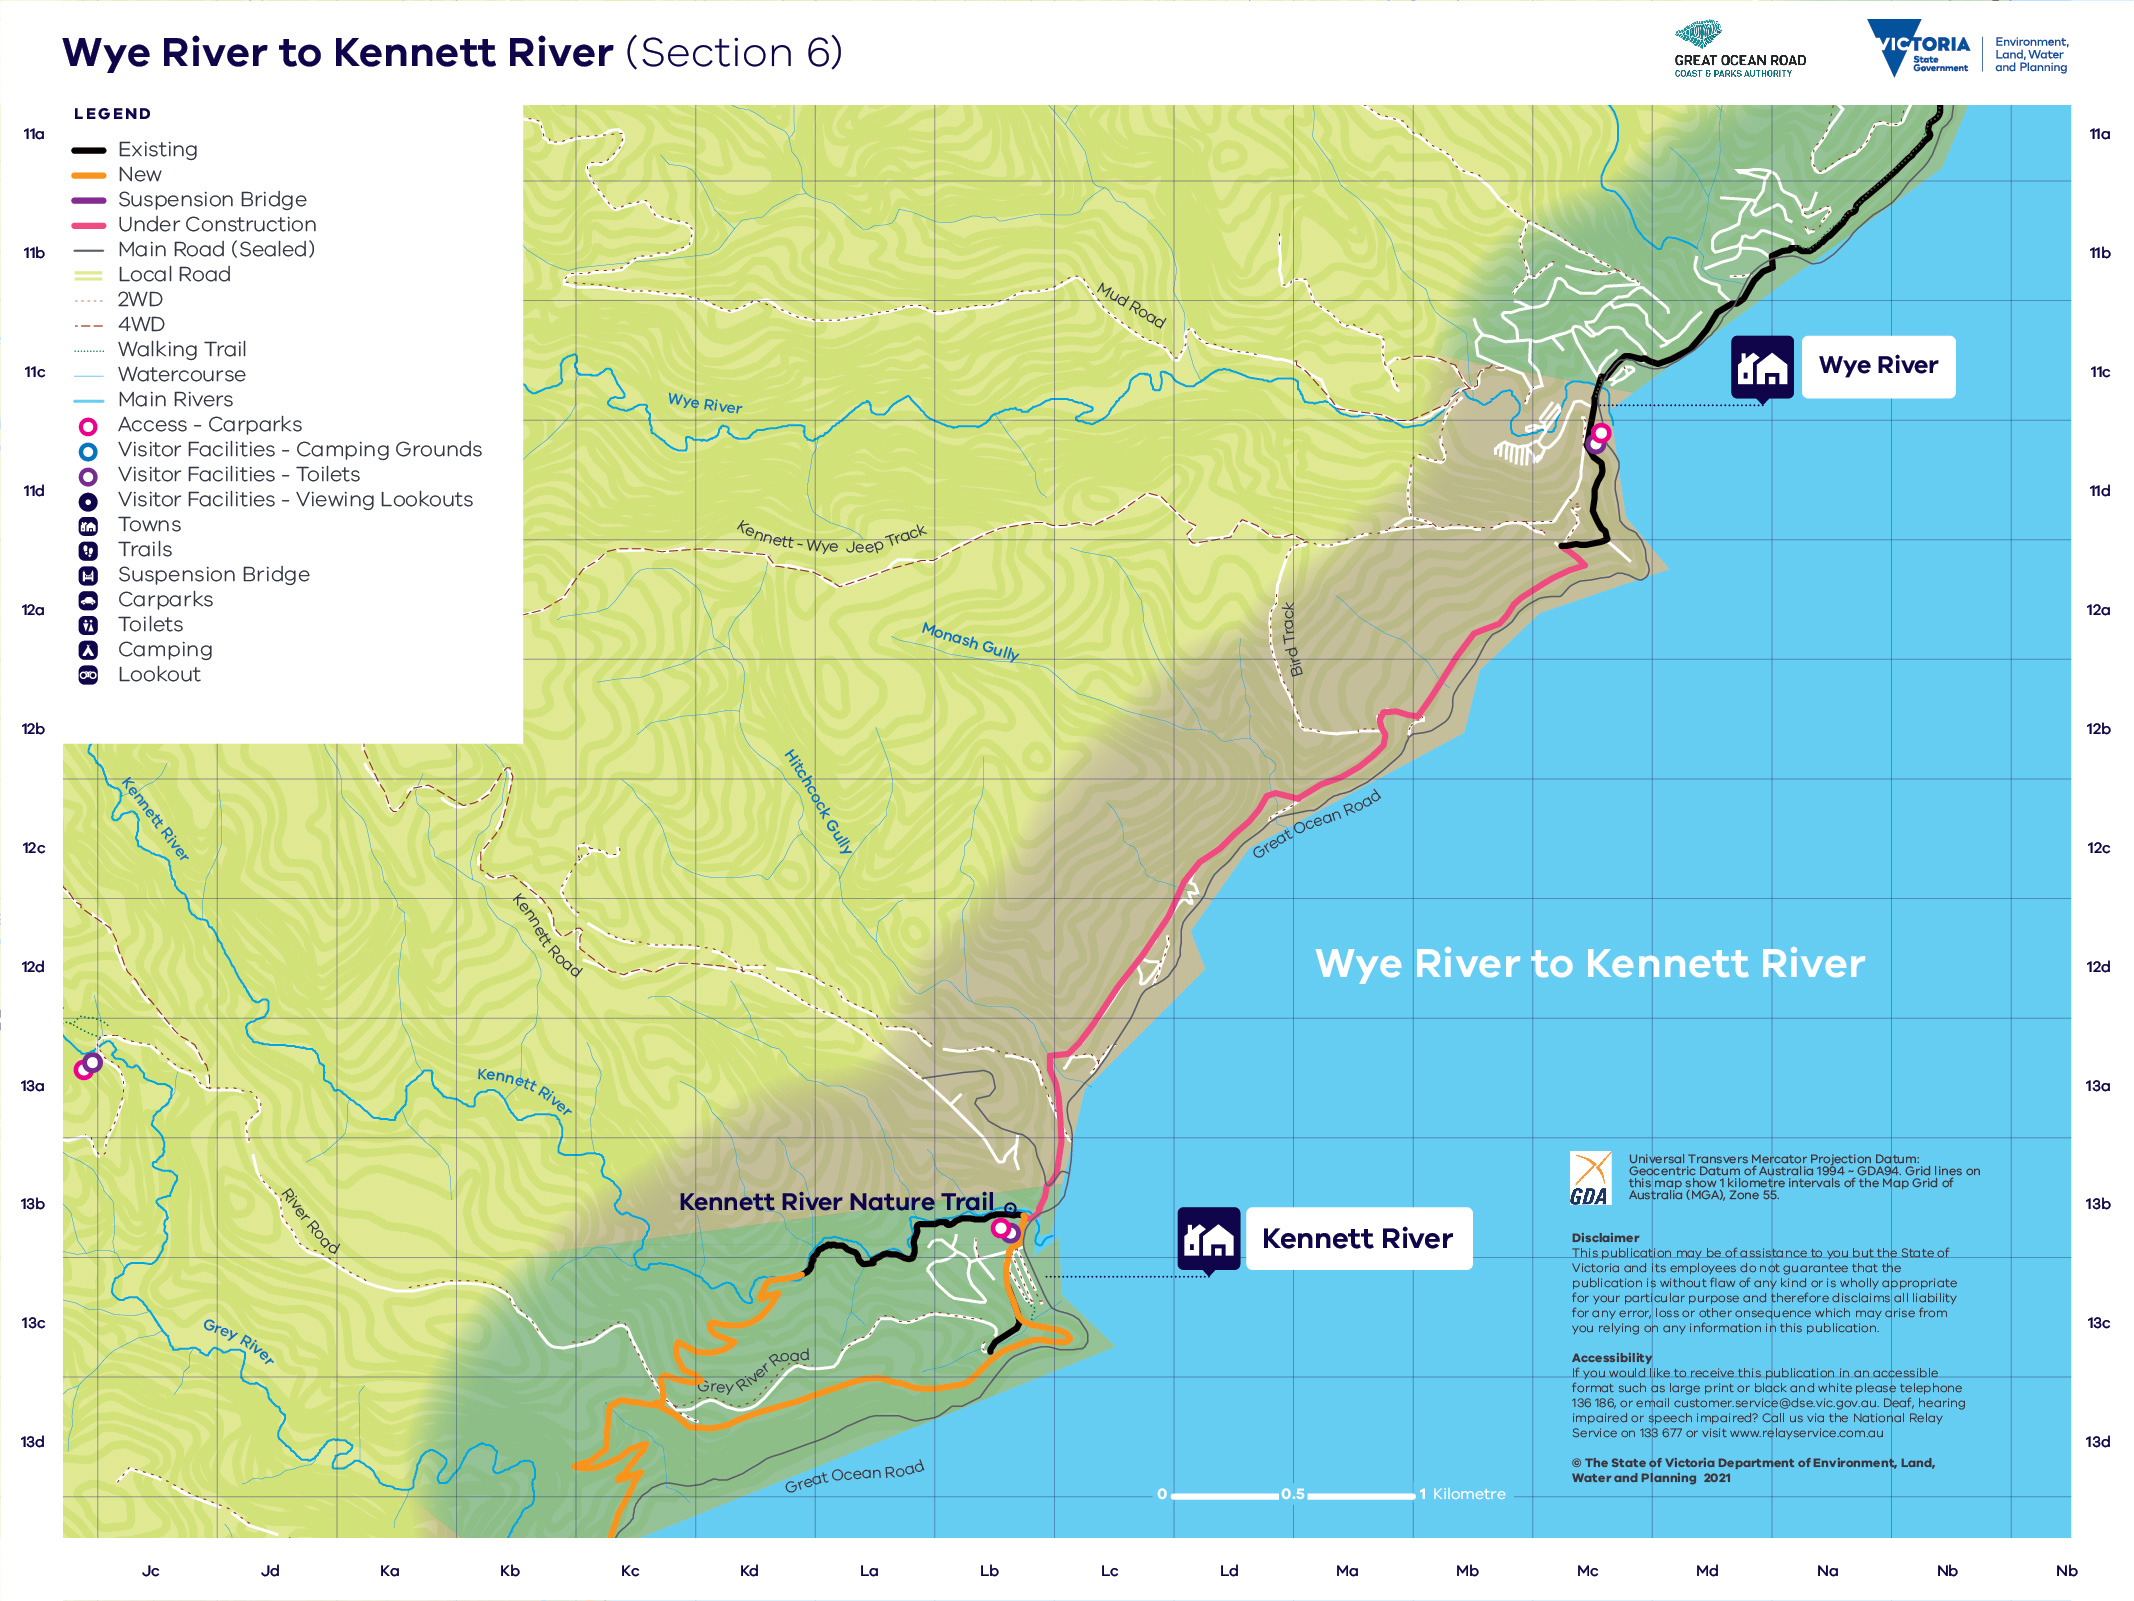 Map showing trail route for section 6 from Wye River to Kennett River